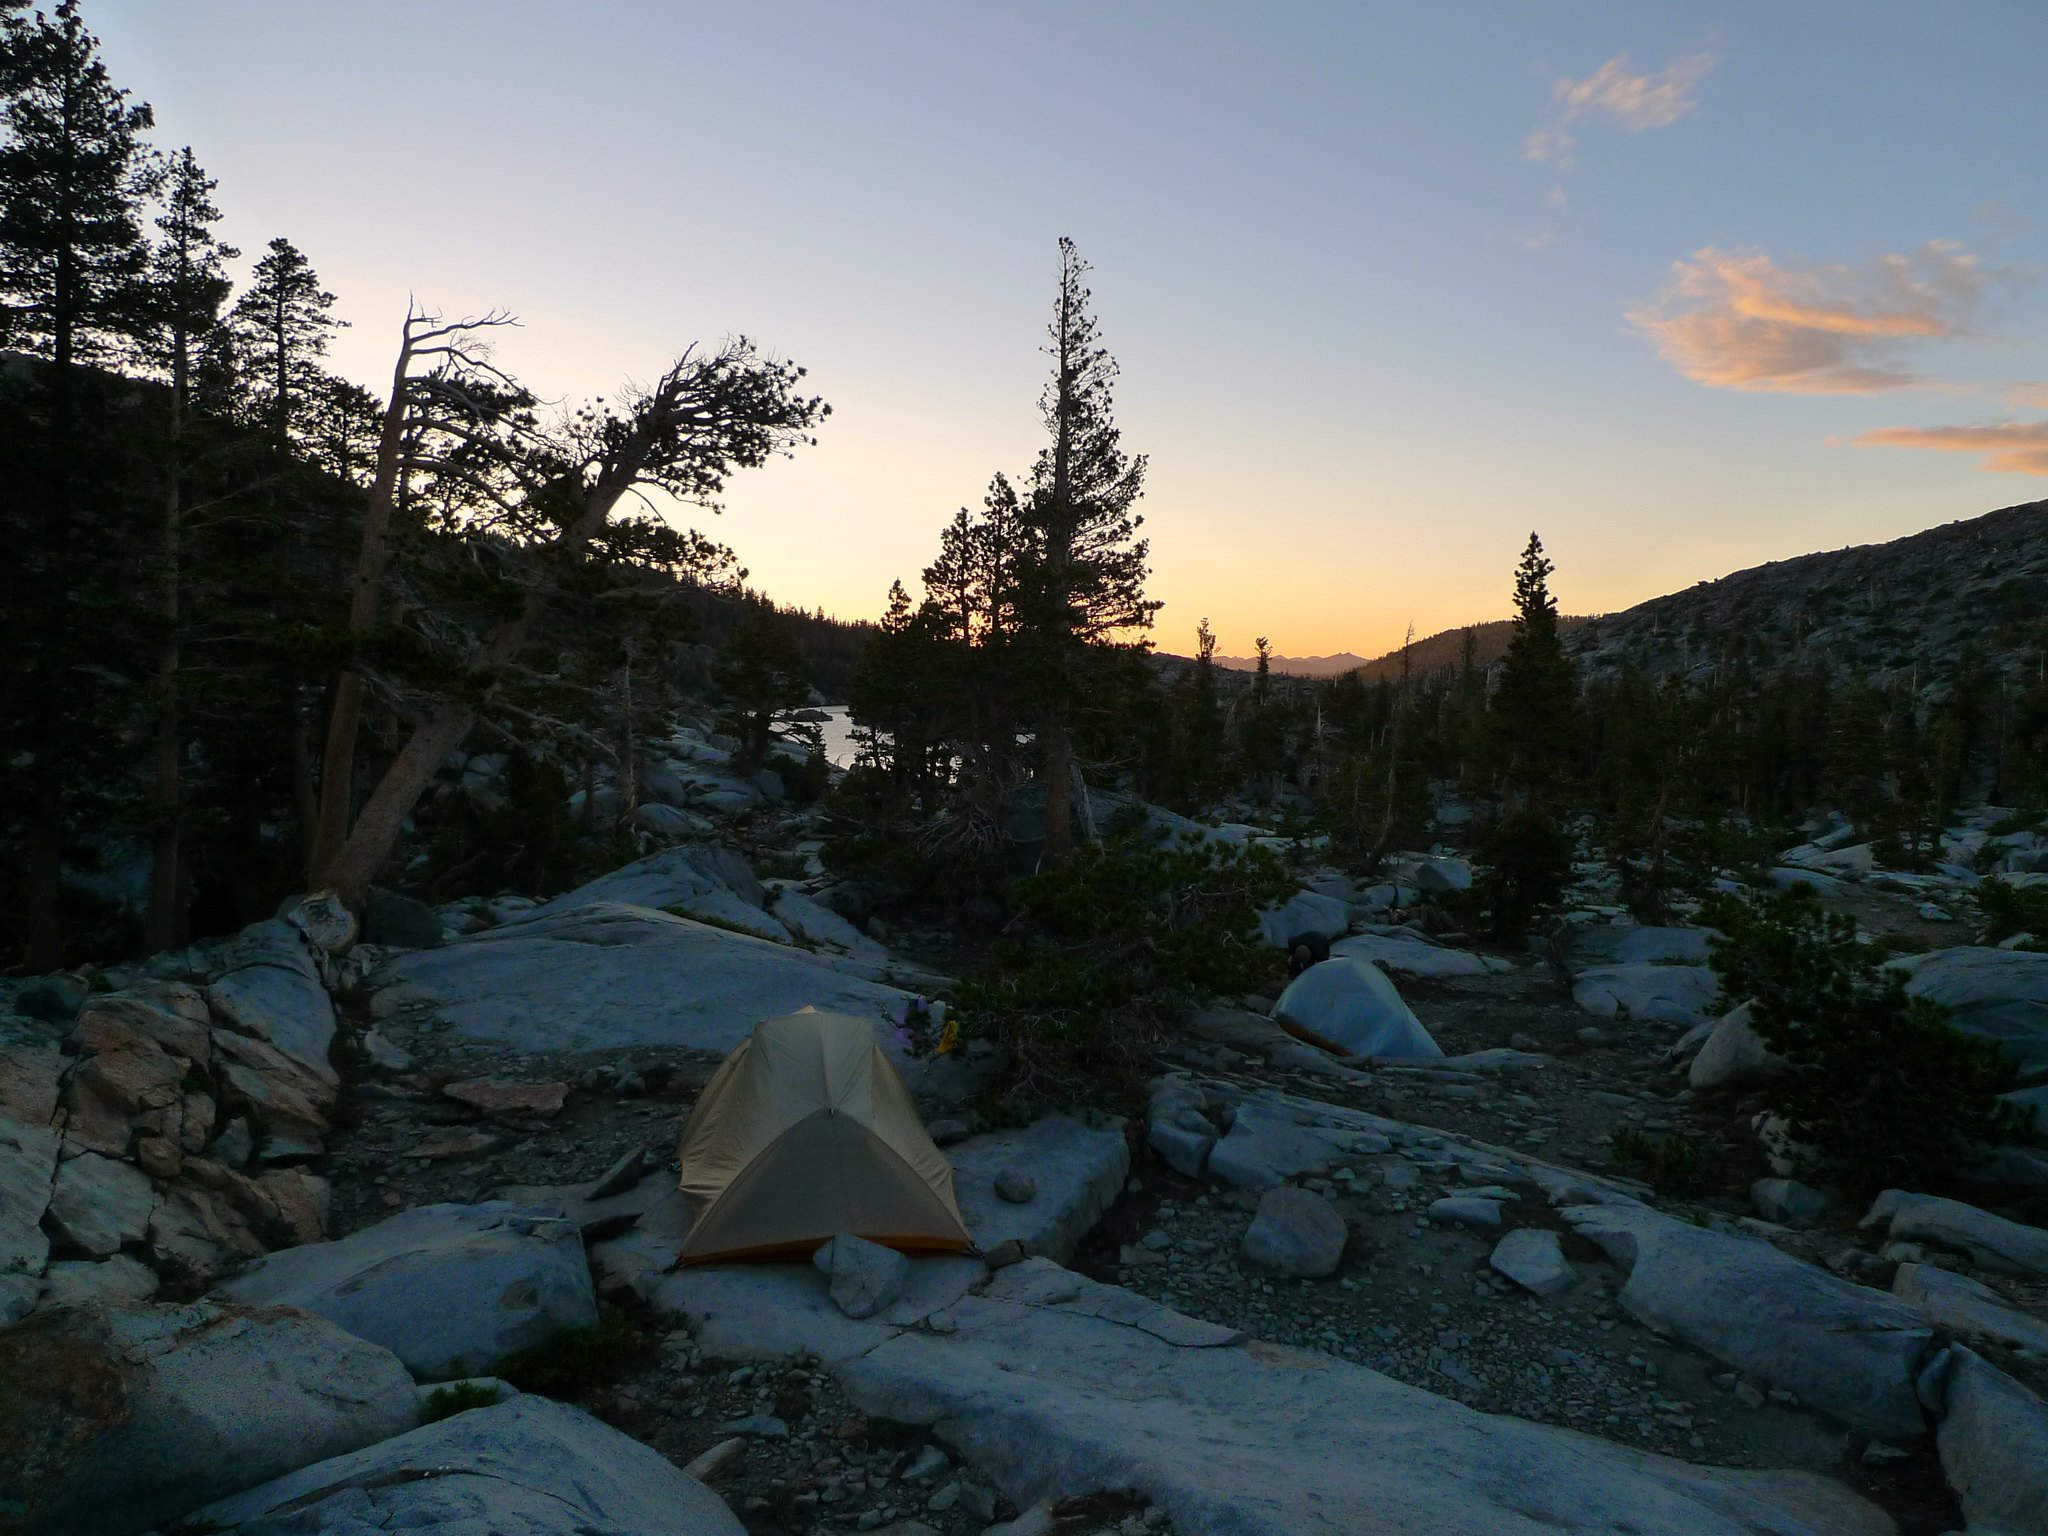 Sunset at Camp 2 between Dick's and Fontanillis Lake